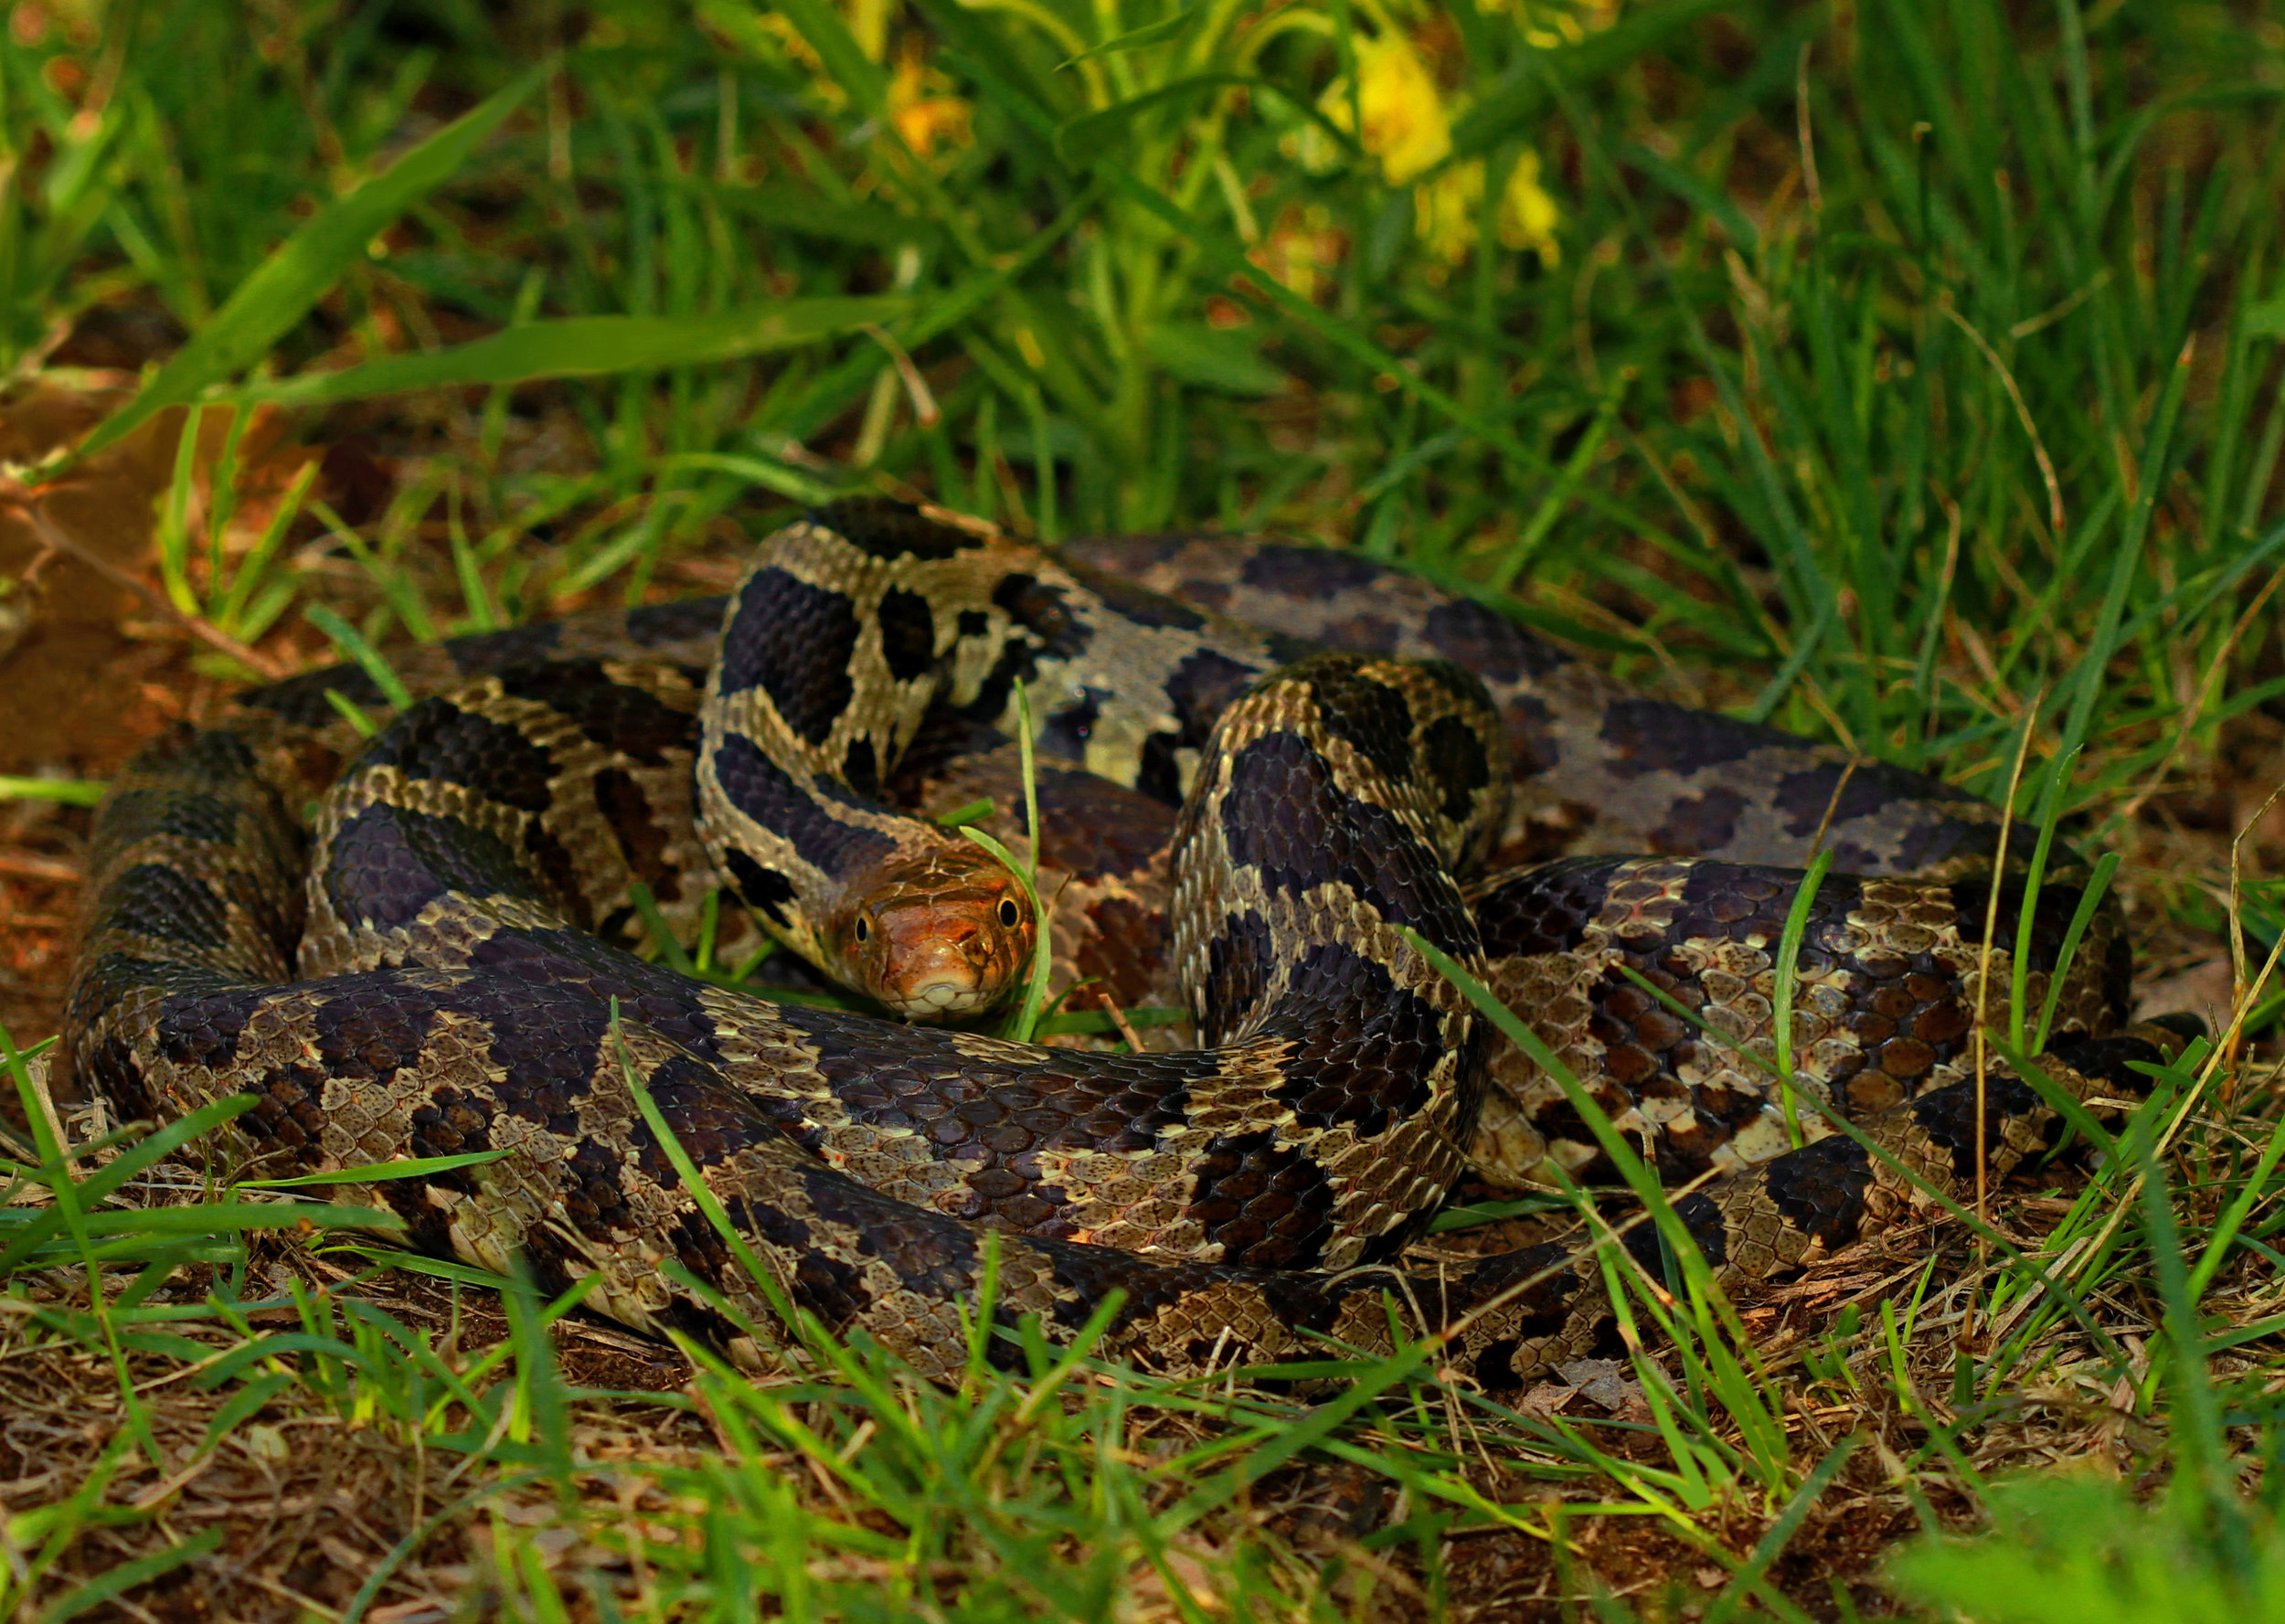 A coiled-up eastern fox snake looks fiercely at the camera. Photo by Peter Paplanus